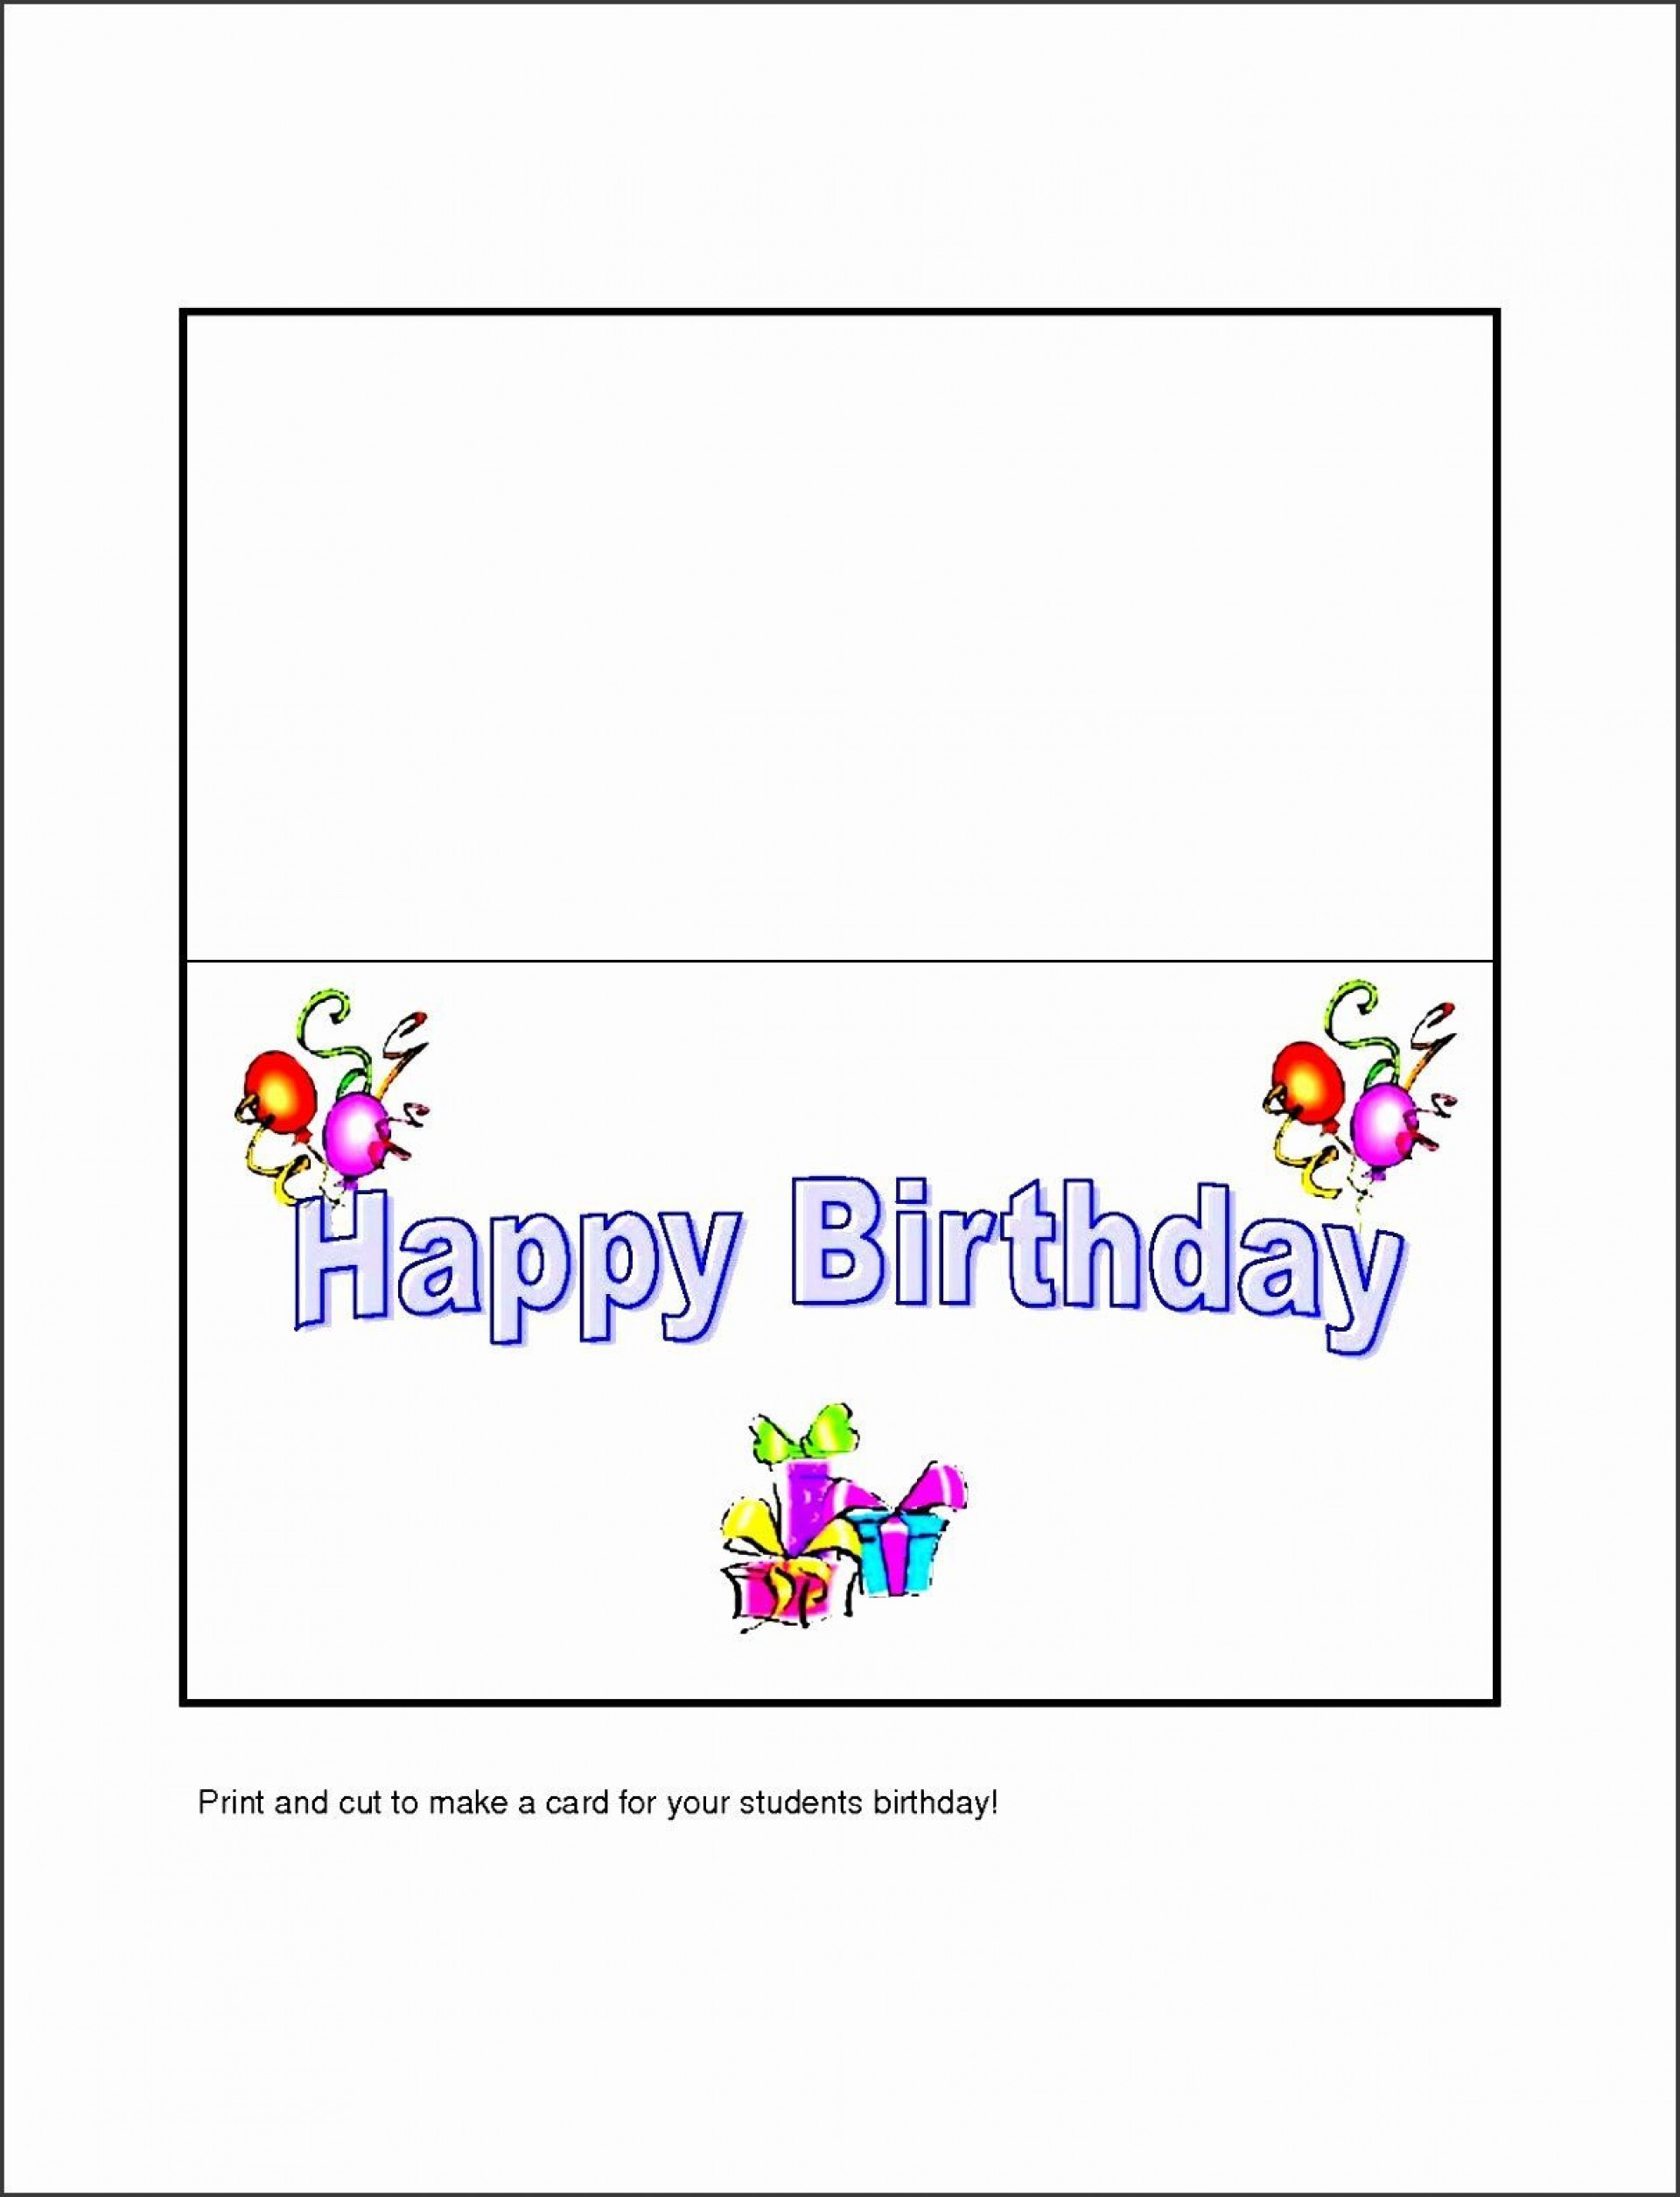 006 Excellent Birthday Card Template For Microsoft Word Highest Clarity  Free Greeting Layout1920